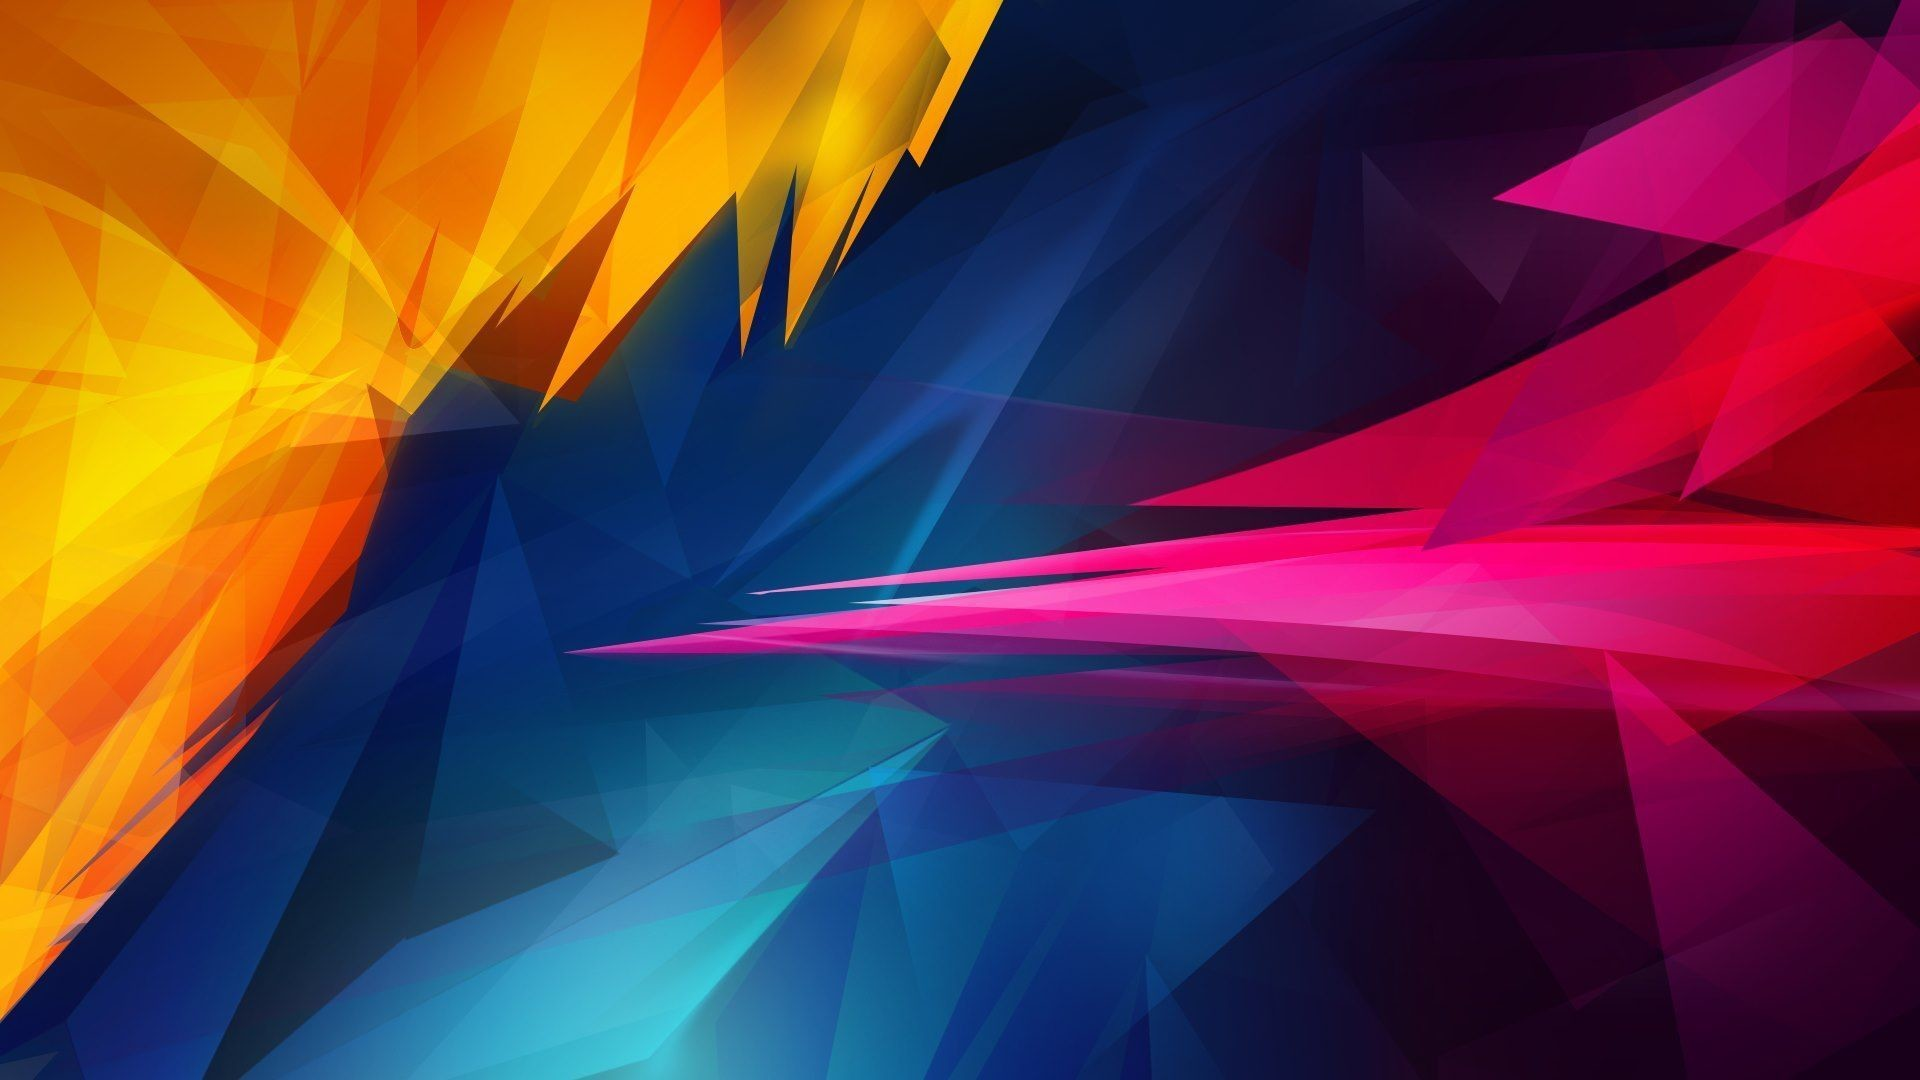 Abstract Sharp Shapes uhd wallpapers – Ultra High Definition .